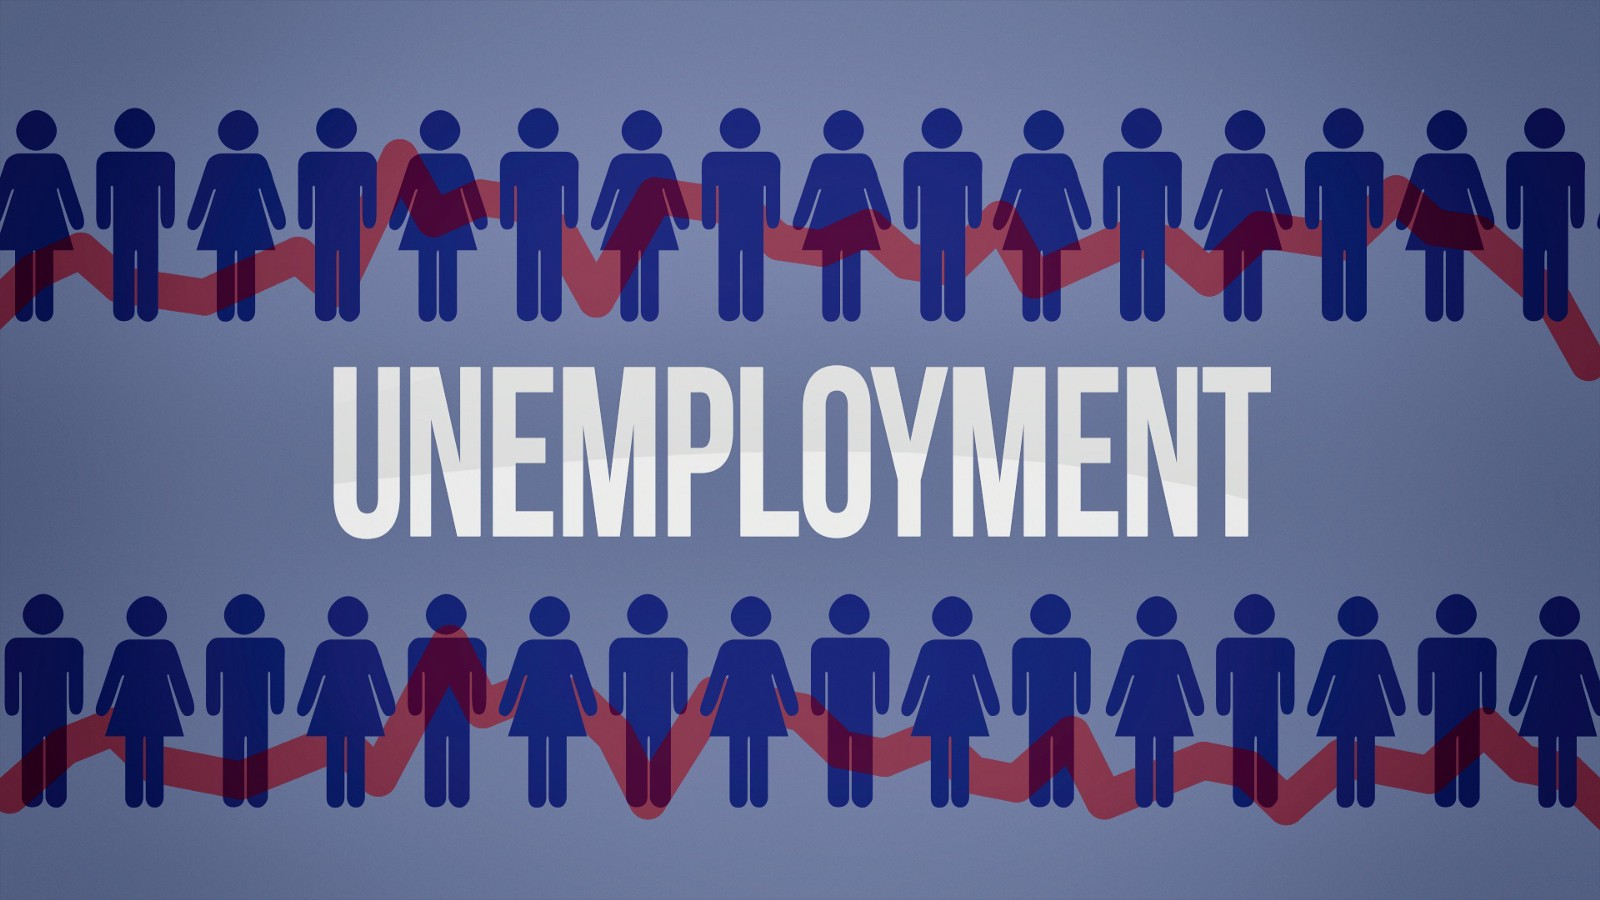 50 Resourceful Business for Unemployment in Nigeria